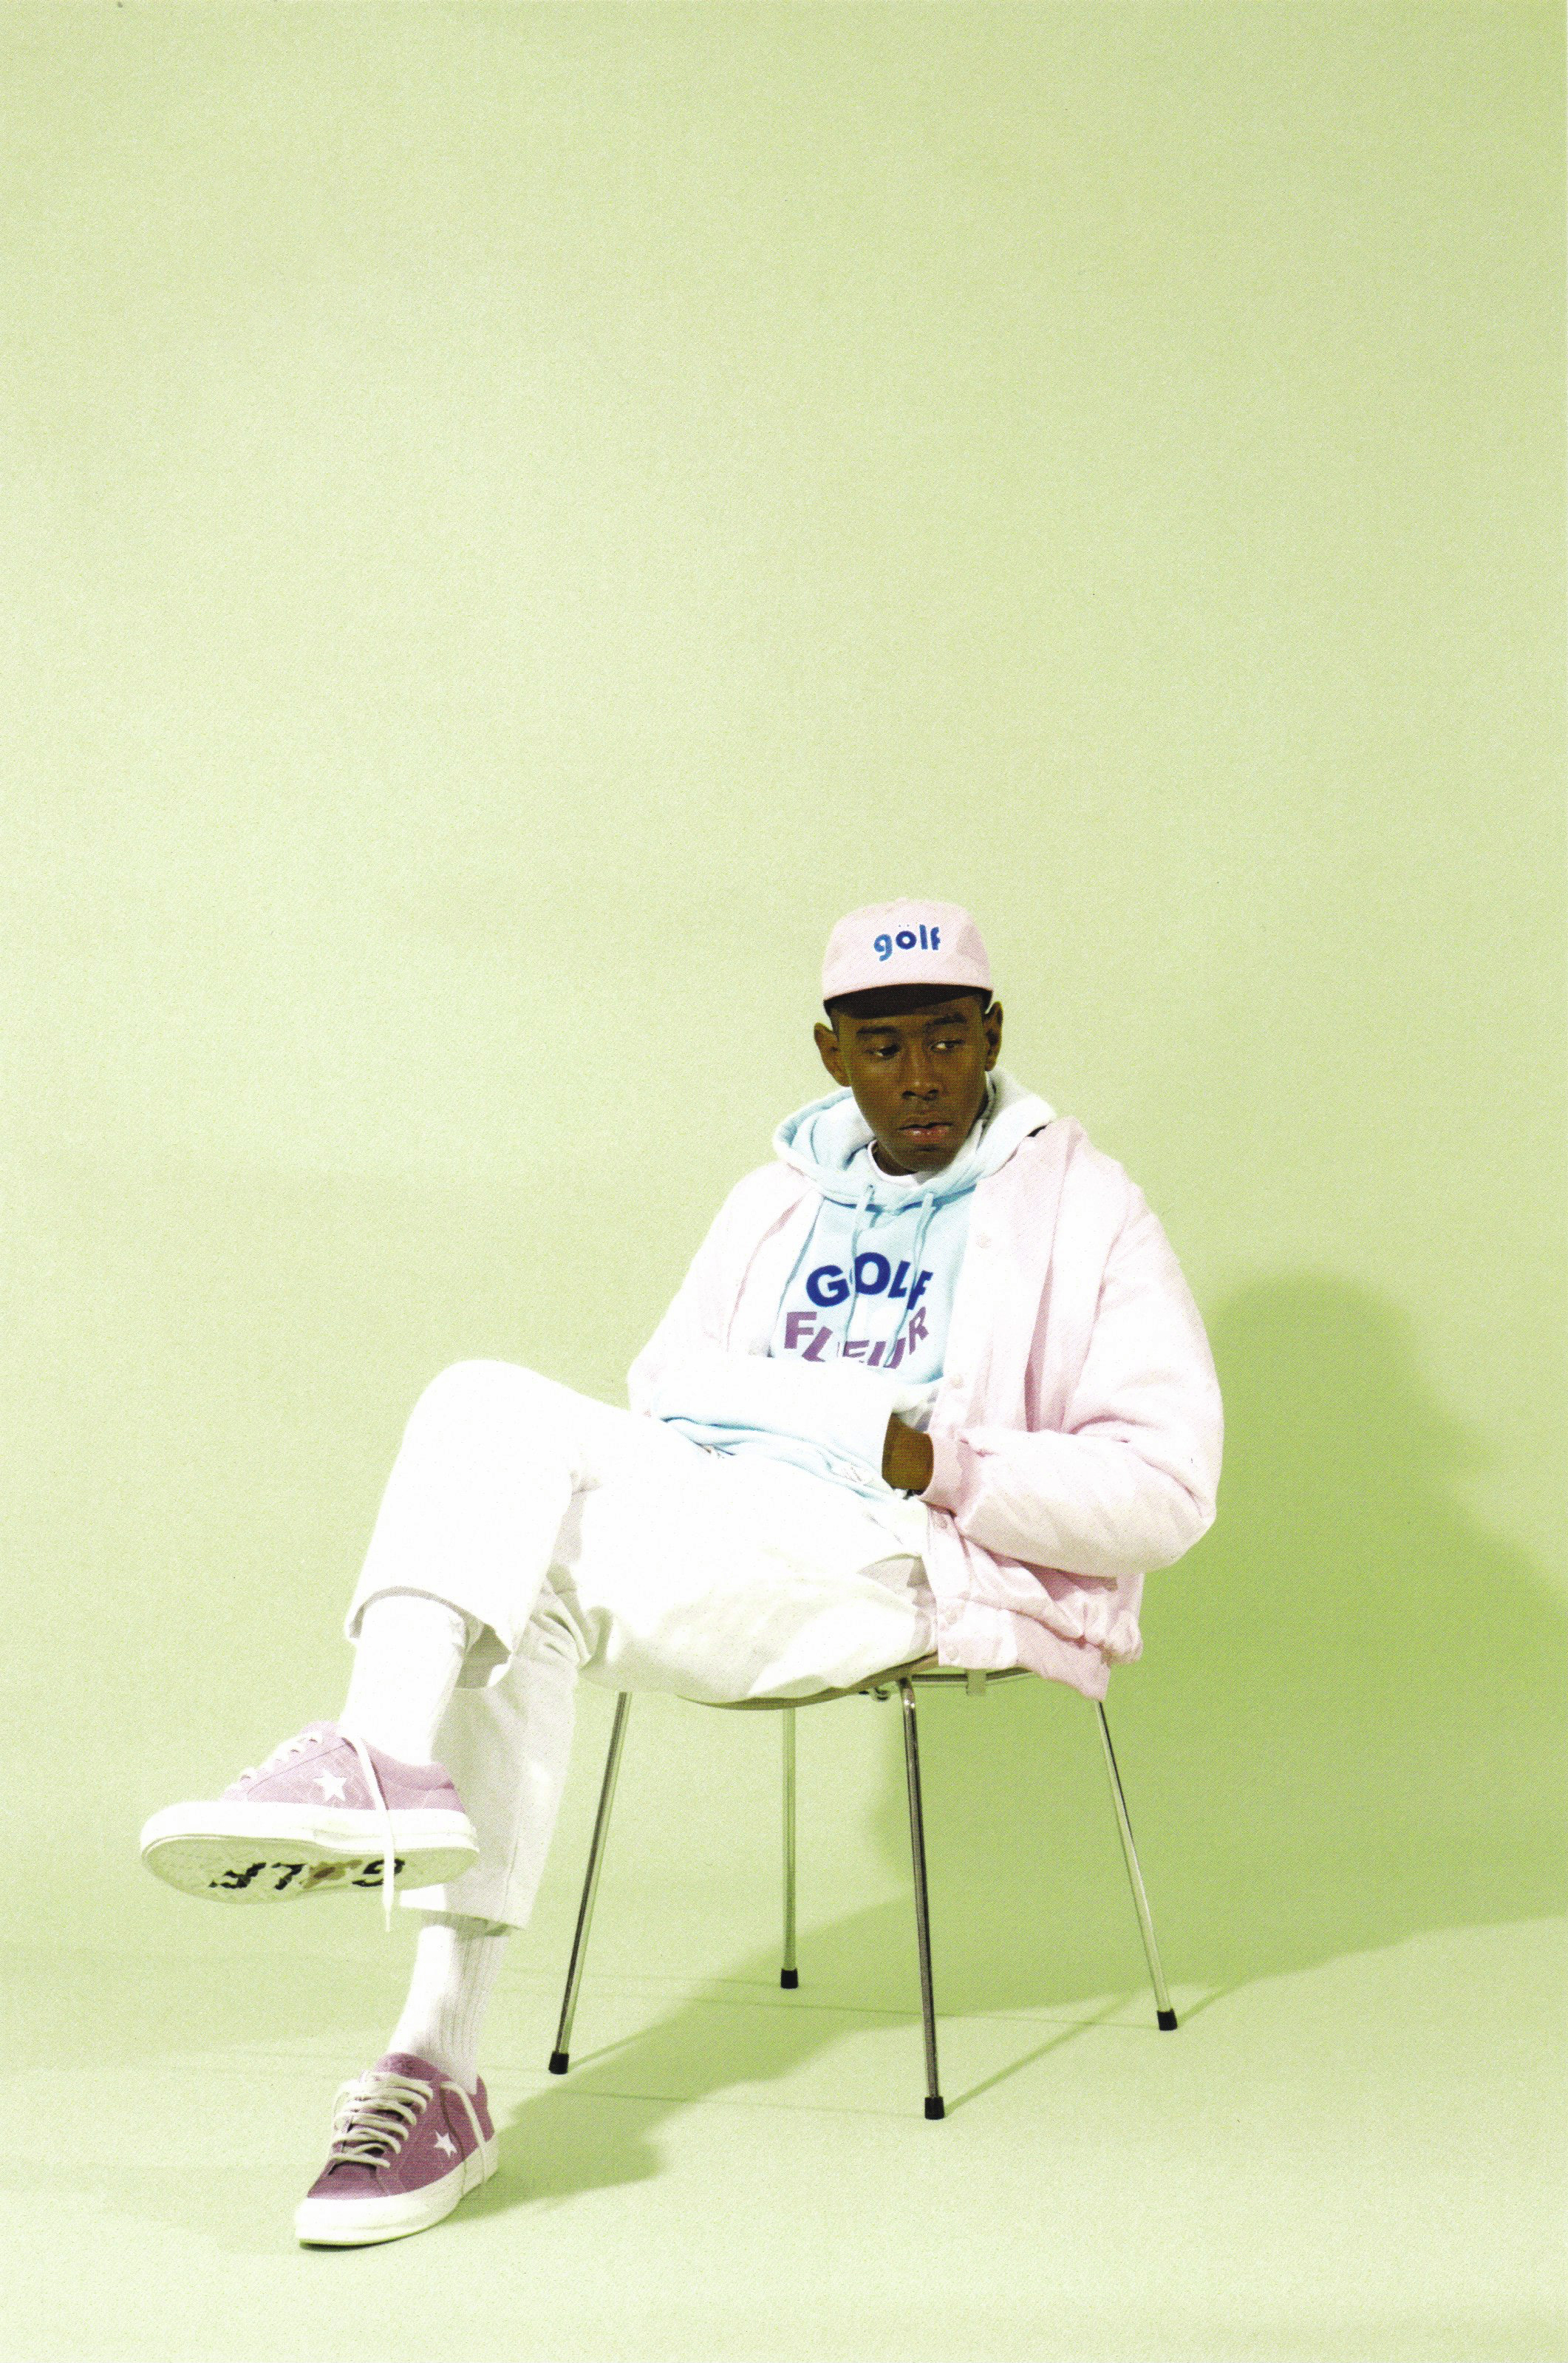 CONVERSE ONE STAR GOLF LE FLEUR - TYLER, THE CREATOR